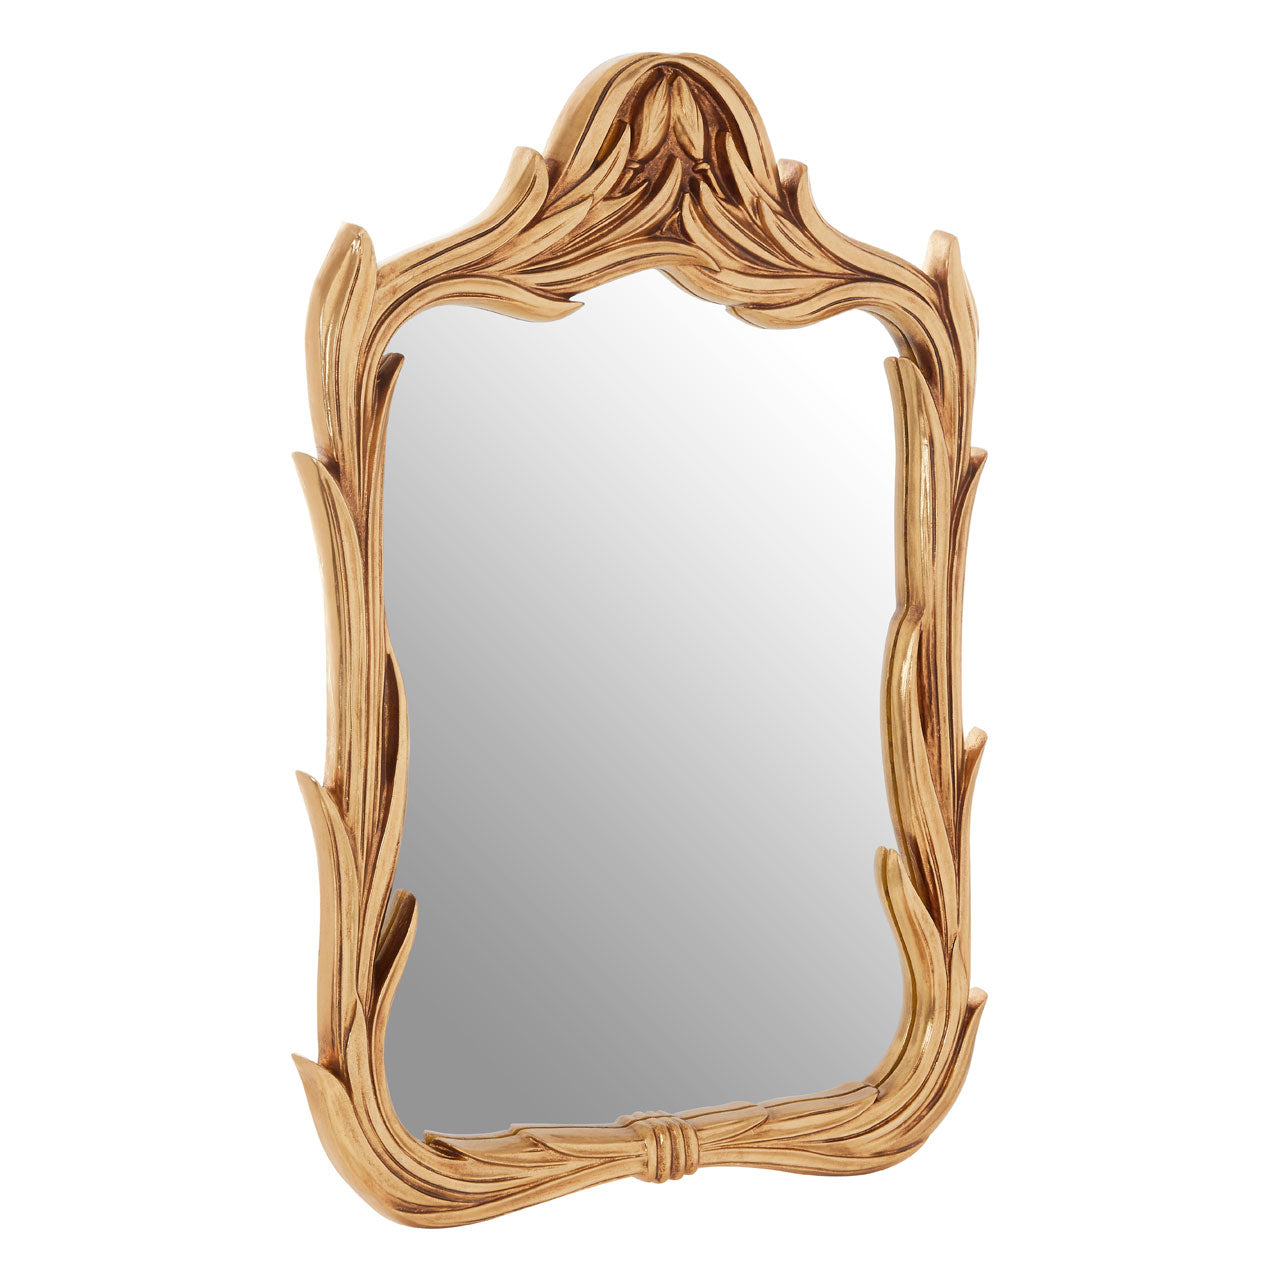 Marseille Floral Wall Mirror Gold